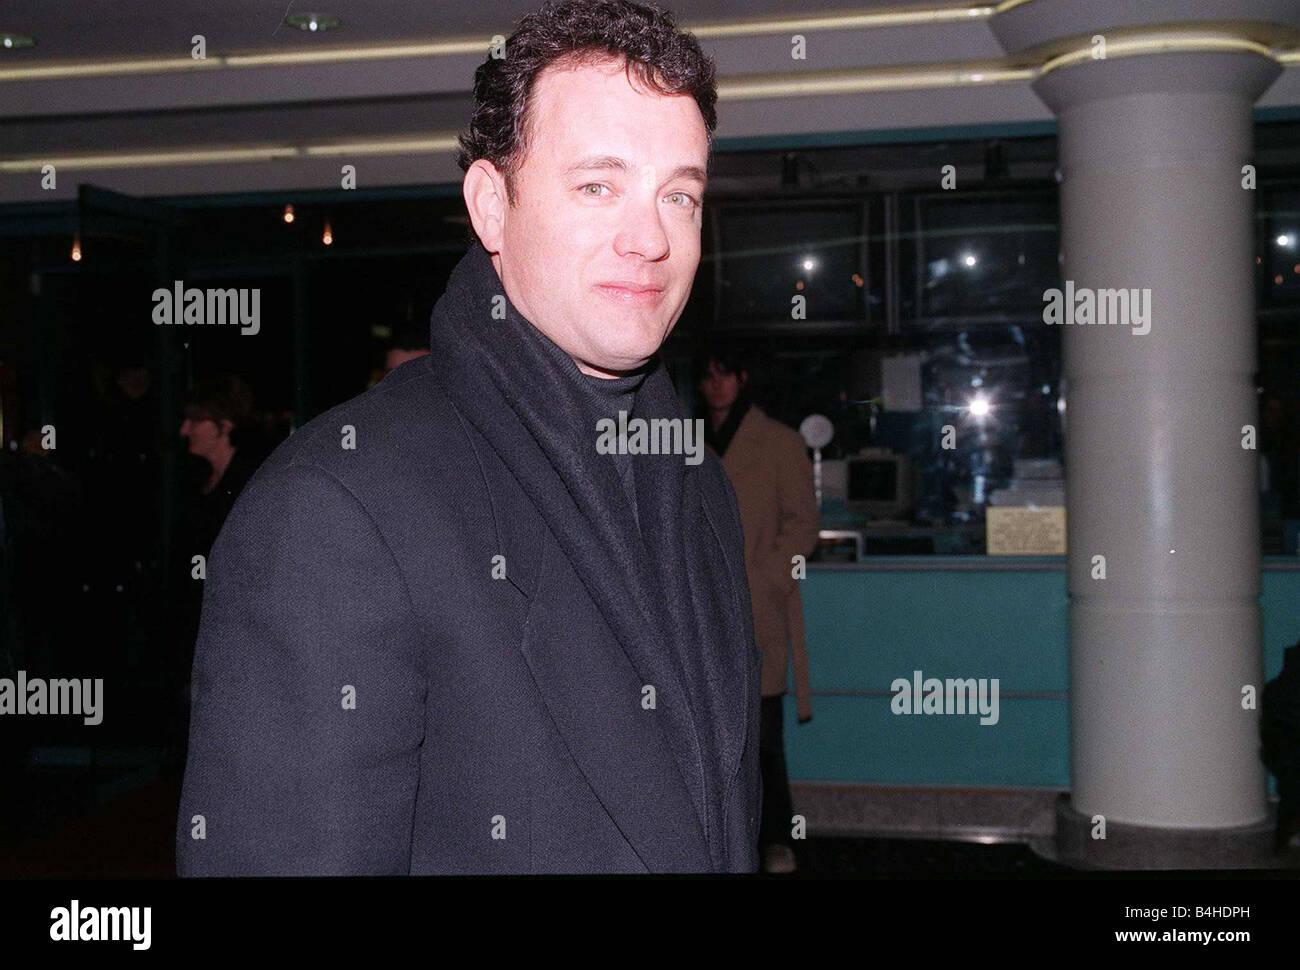 Tom Hanks Actor at the film premier of That Thing You Do - Stock Image